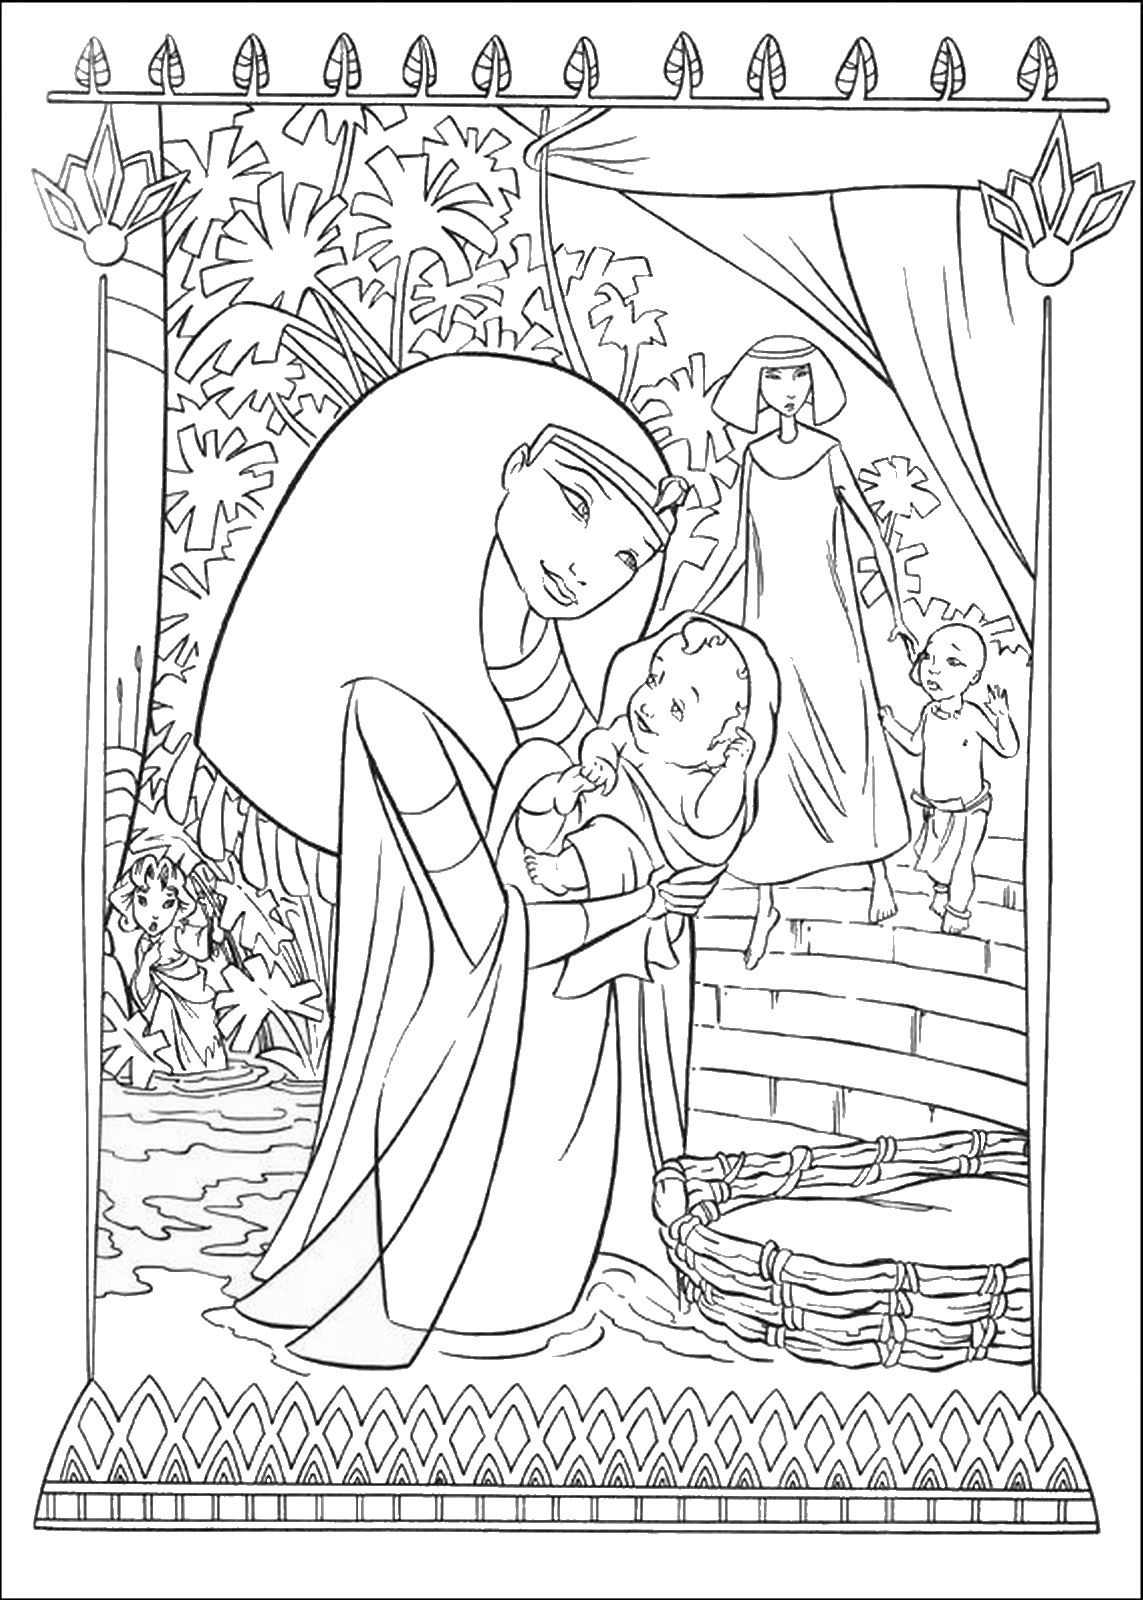 The Prince of Egypt Coloring Pages   HS - History/Geography/Bible ...